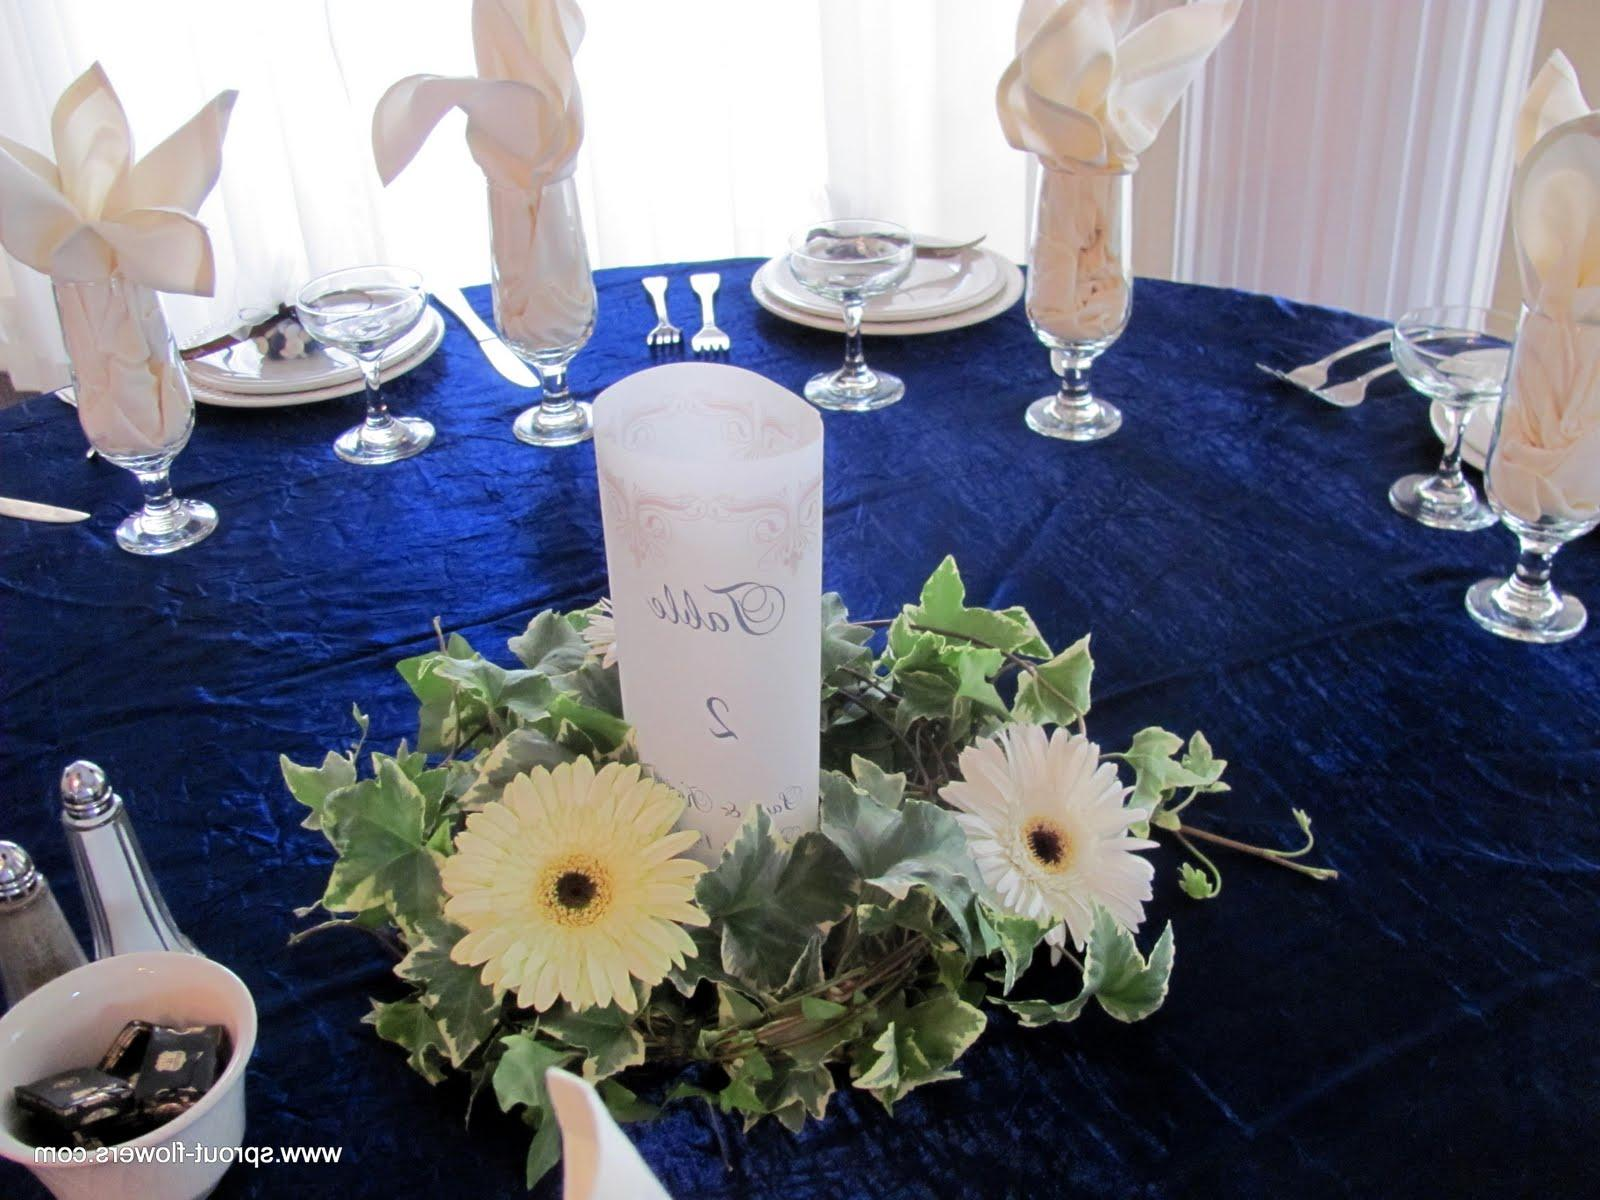 the centerpieces were